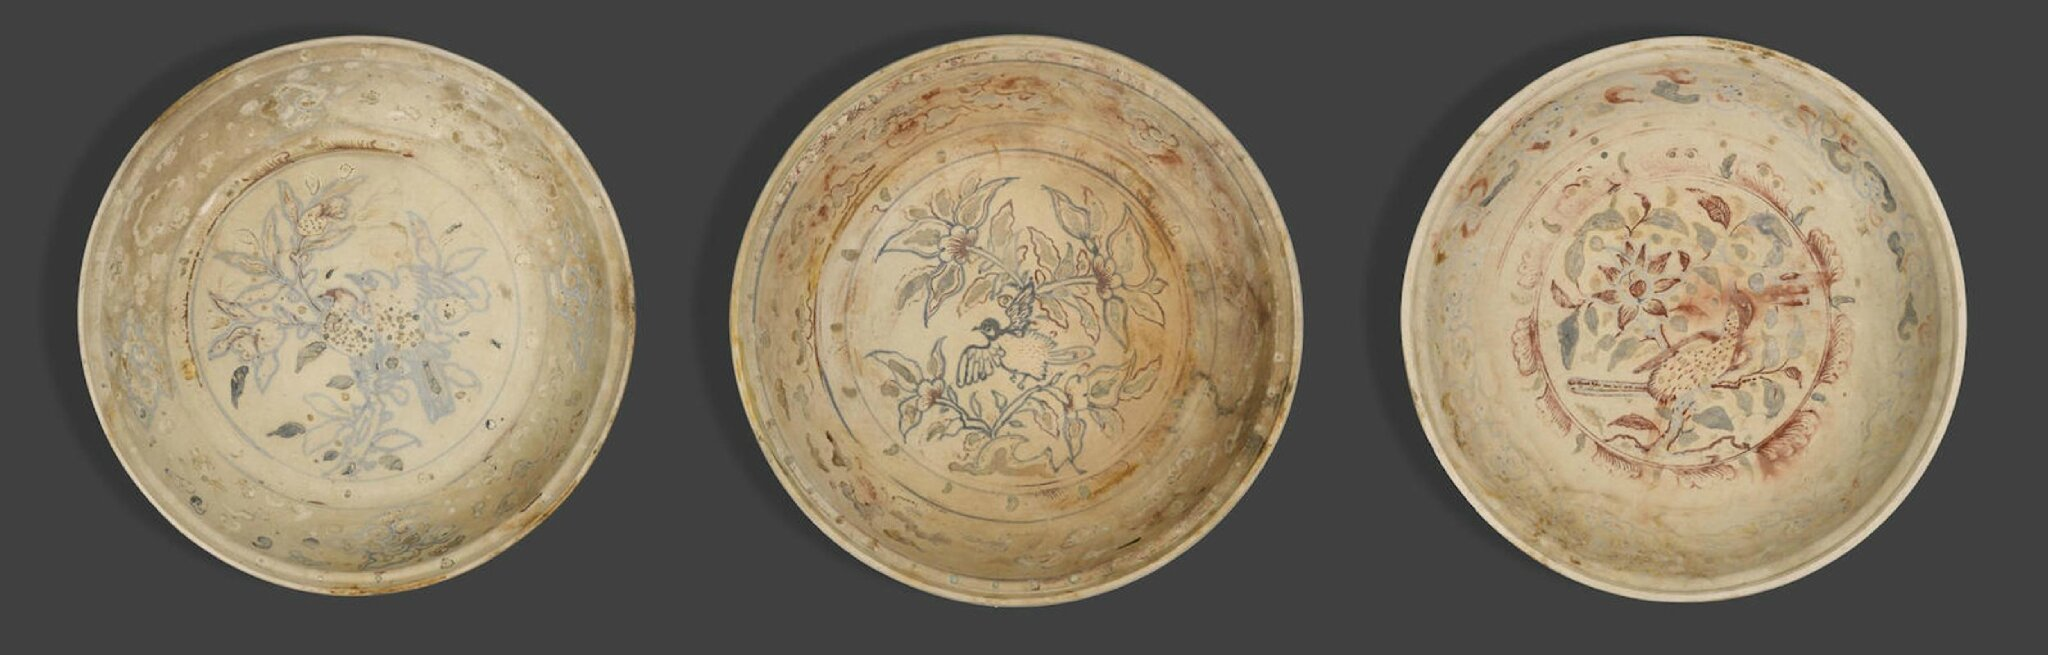 A group of three large underglaze blue and enameled dishes, Vietnam, late 15th-early 16th century